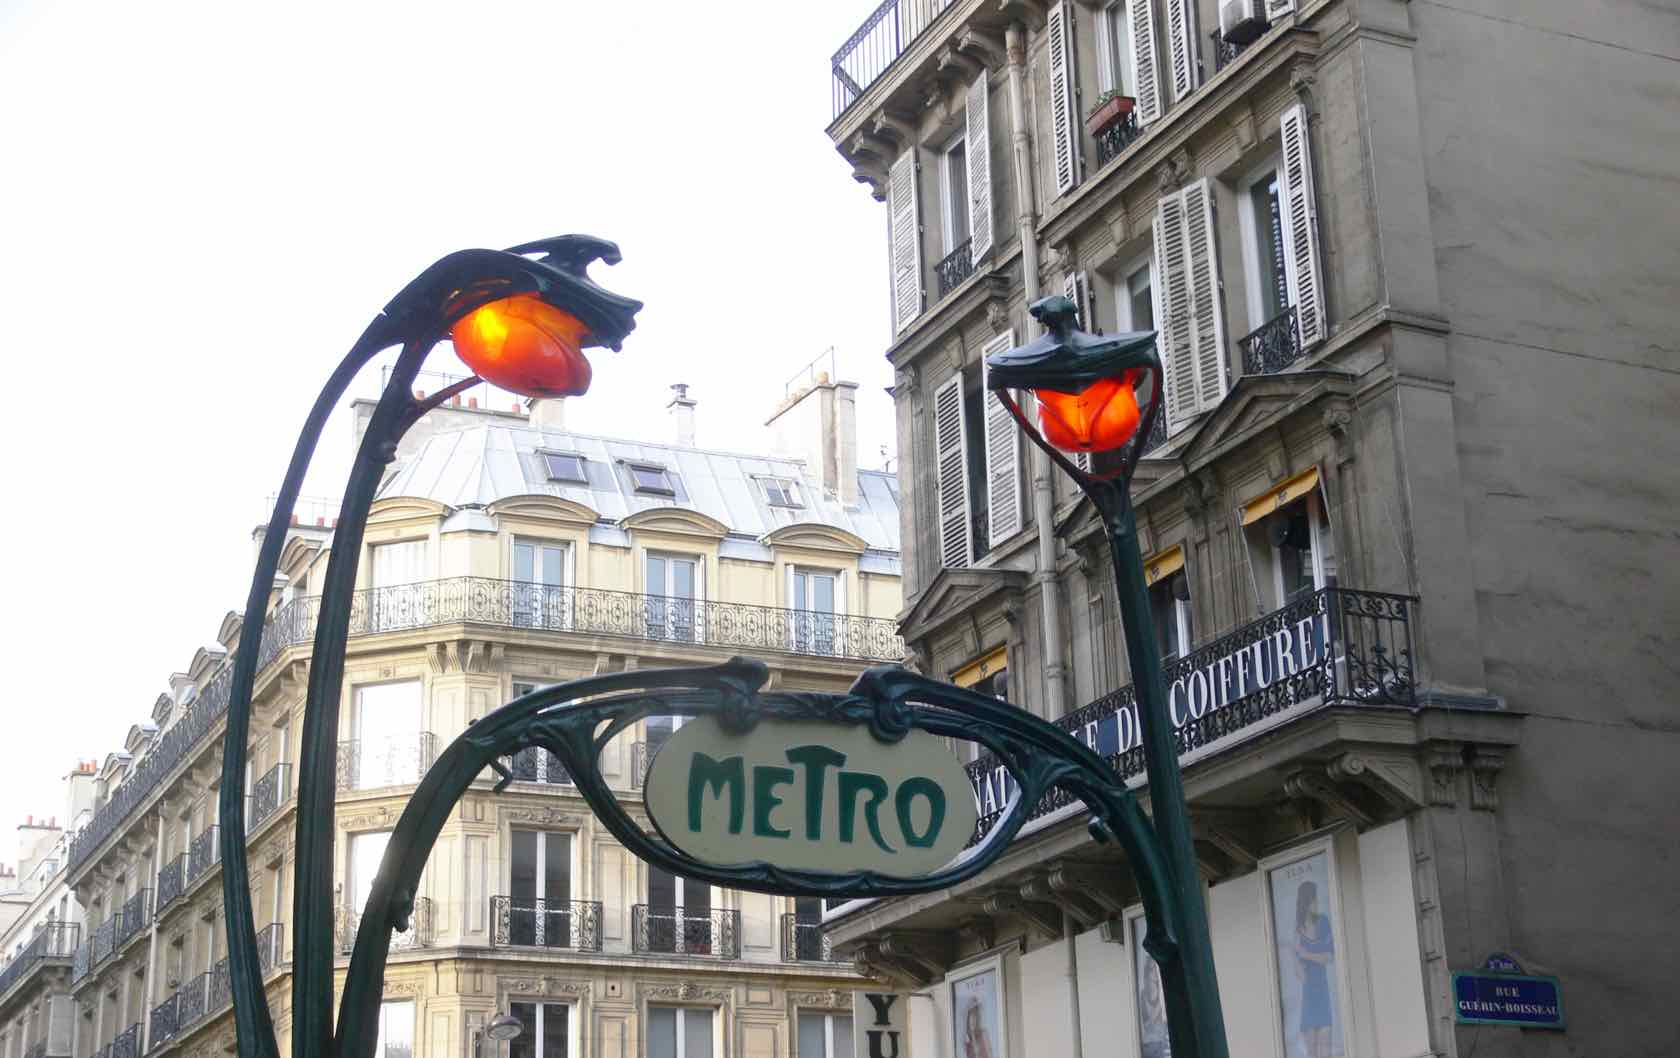 Paris Metro Station Entrance